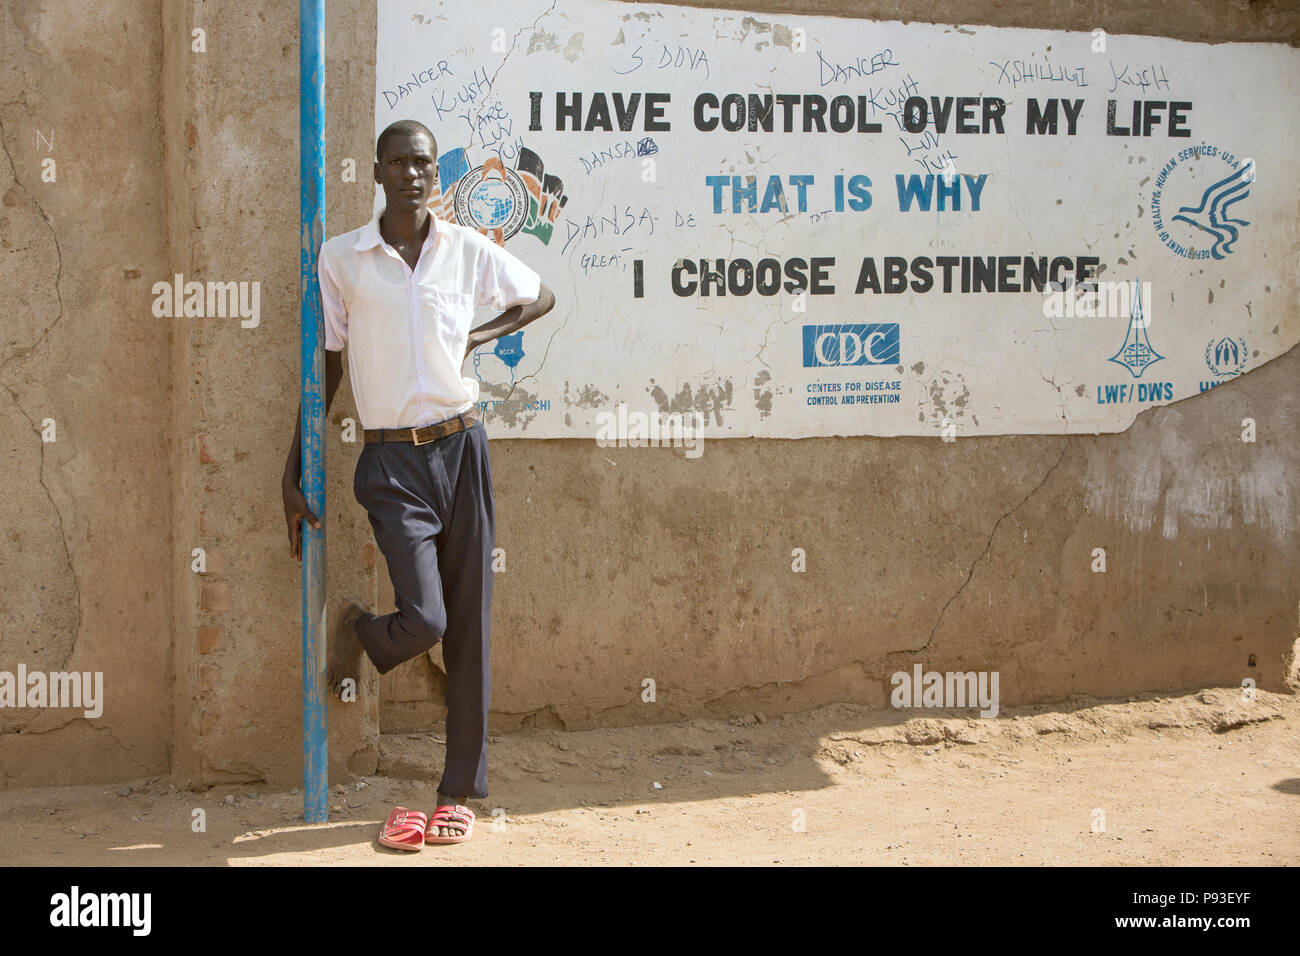 Kakuma, Kenya - Student Leaning Against Kakuma Refugee Camp On Wall With Inscription - I HAVE CONTROL OVER MY LIFE. THAT IS WHY I CHOOSE ABSTINENTE. - Stock Image